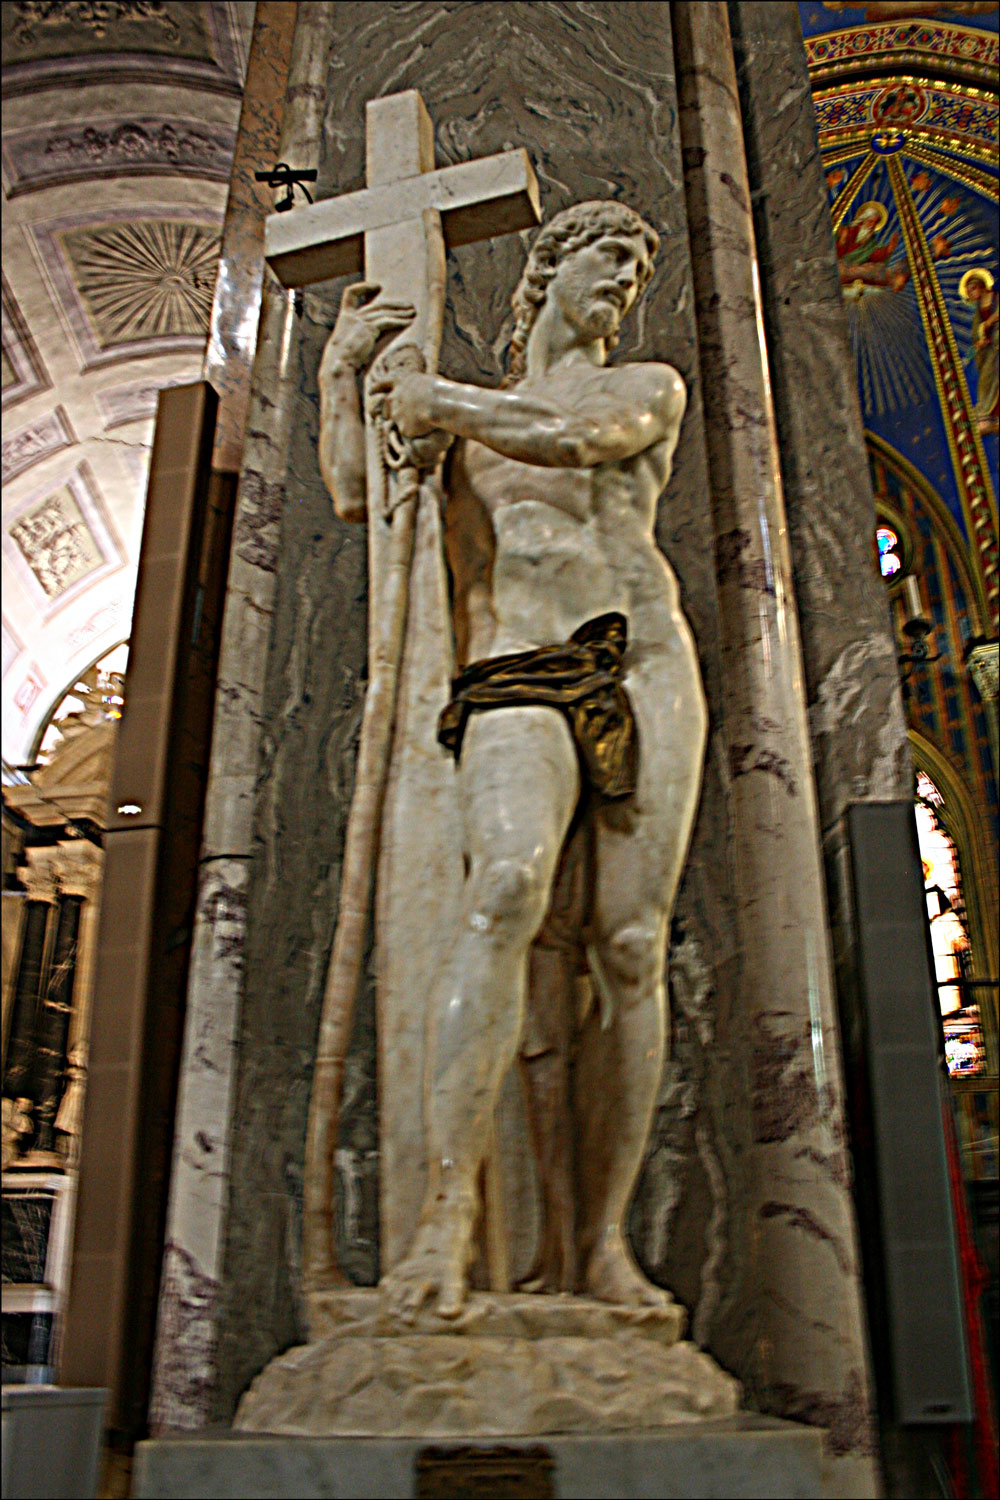 Michelangelo's Sculpture of Christ the Redeemer